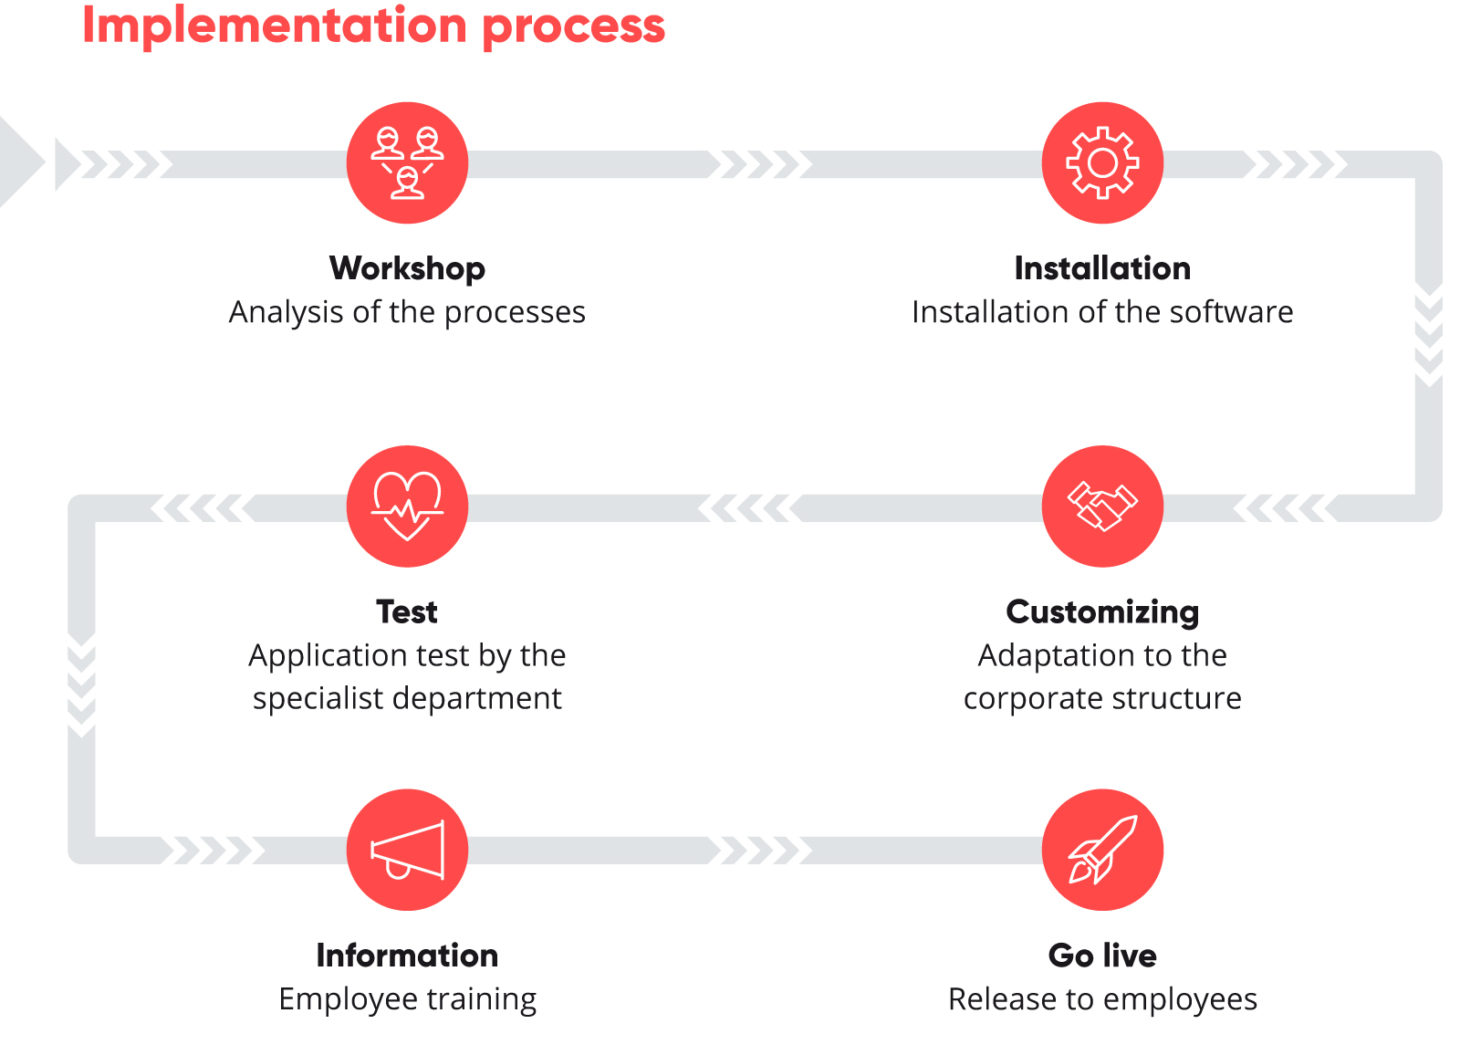 valantic graphic about the HCM Inside implementation process